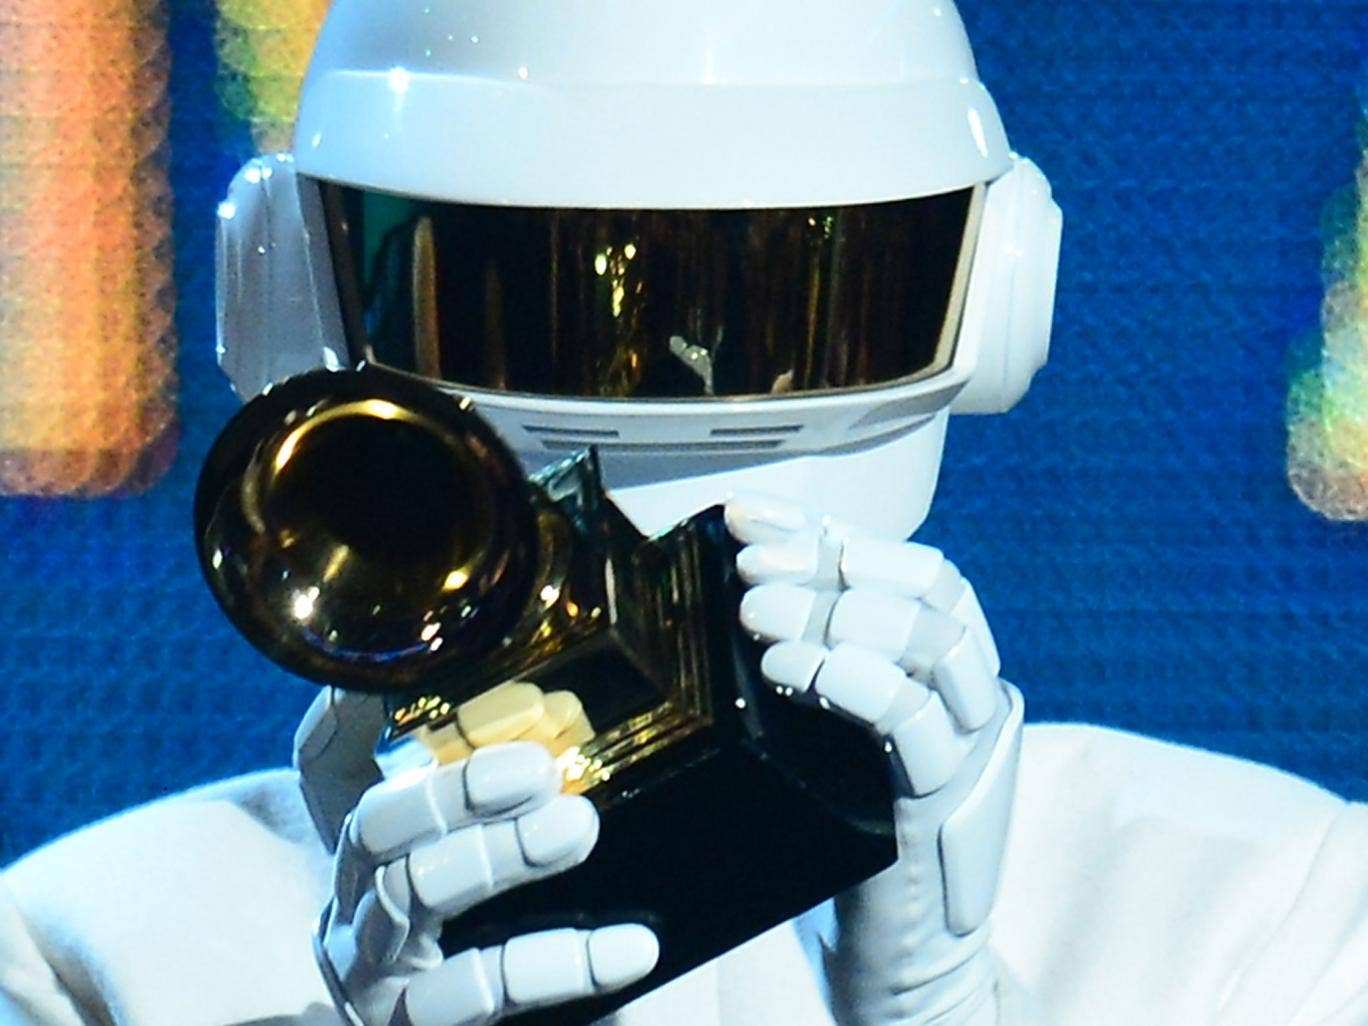 Daft Punk's electronic-funk grooves have won big at the Grammys